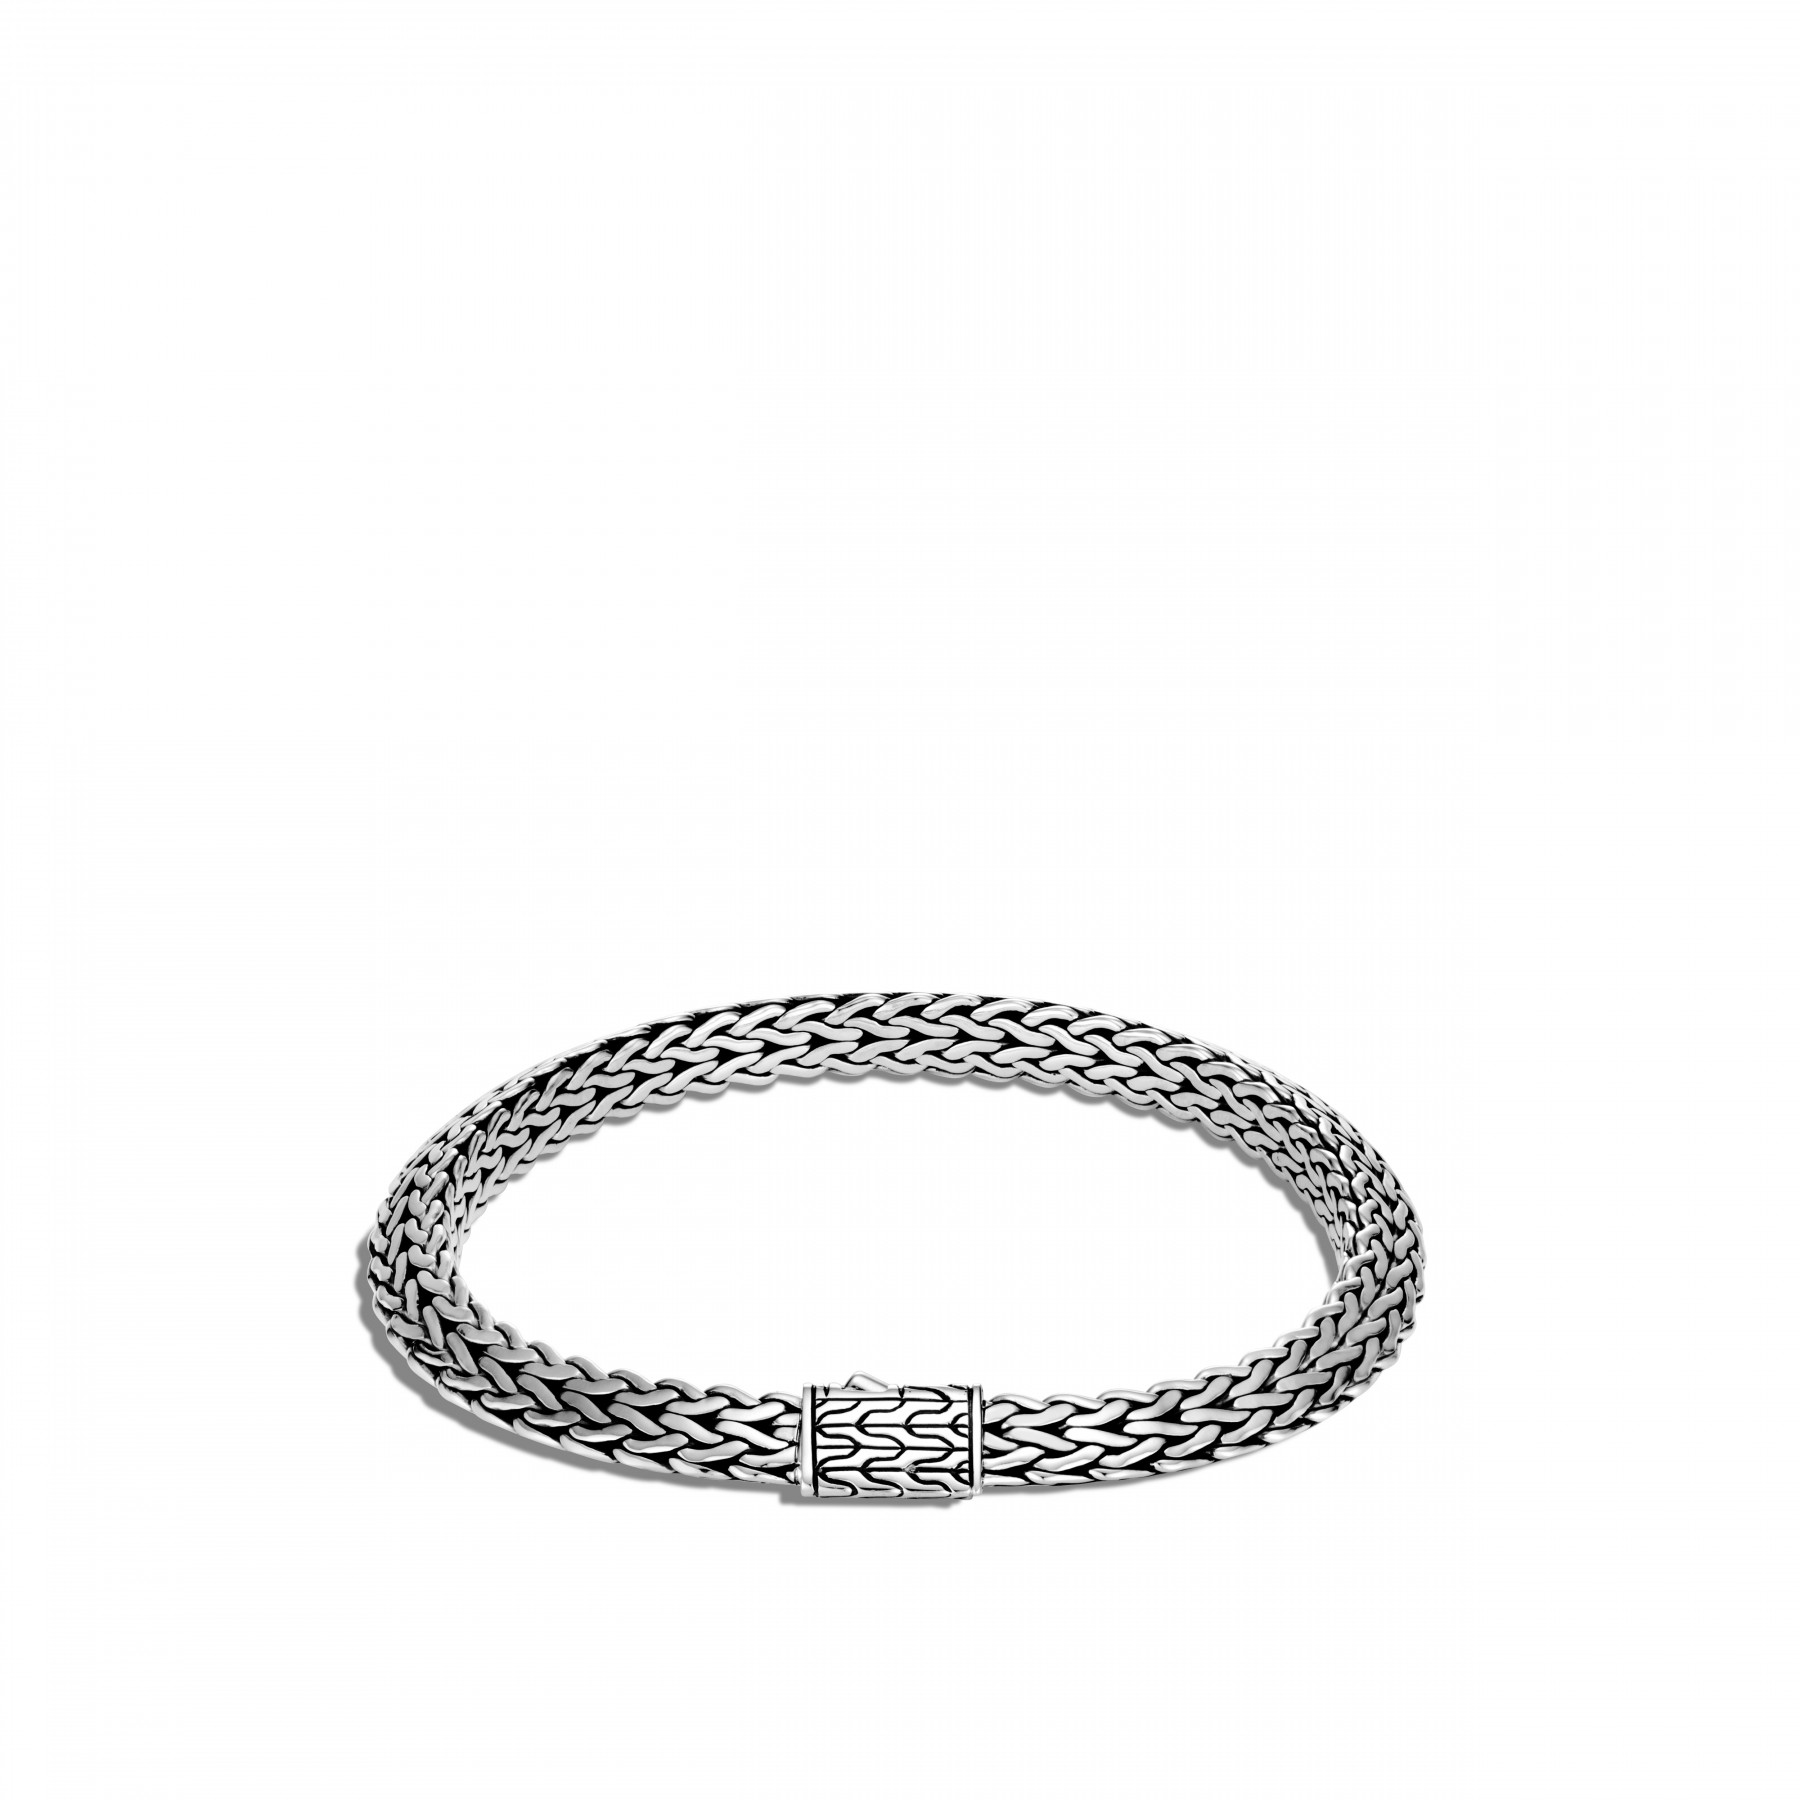 John Hardy Classic Chain Silver Bracelet - 6.4mm front view